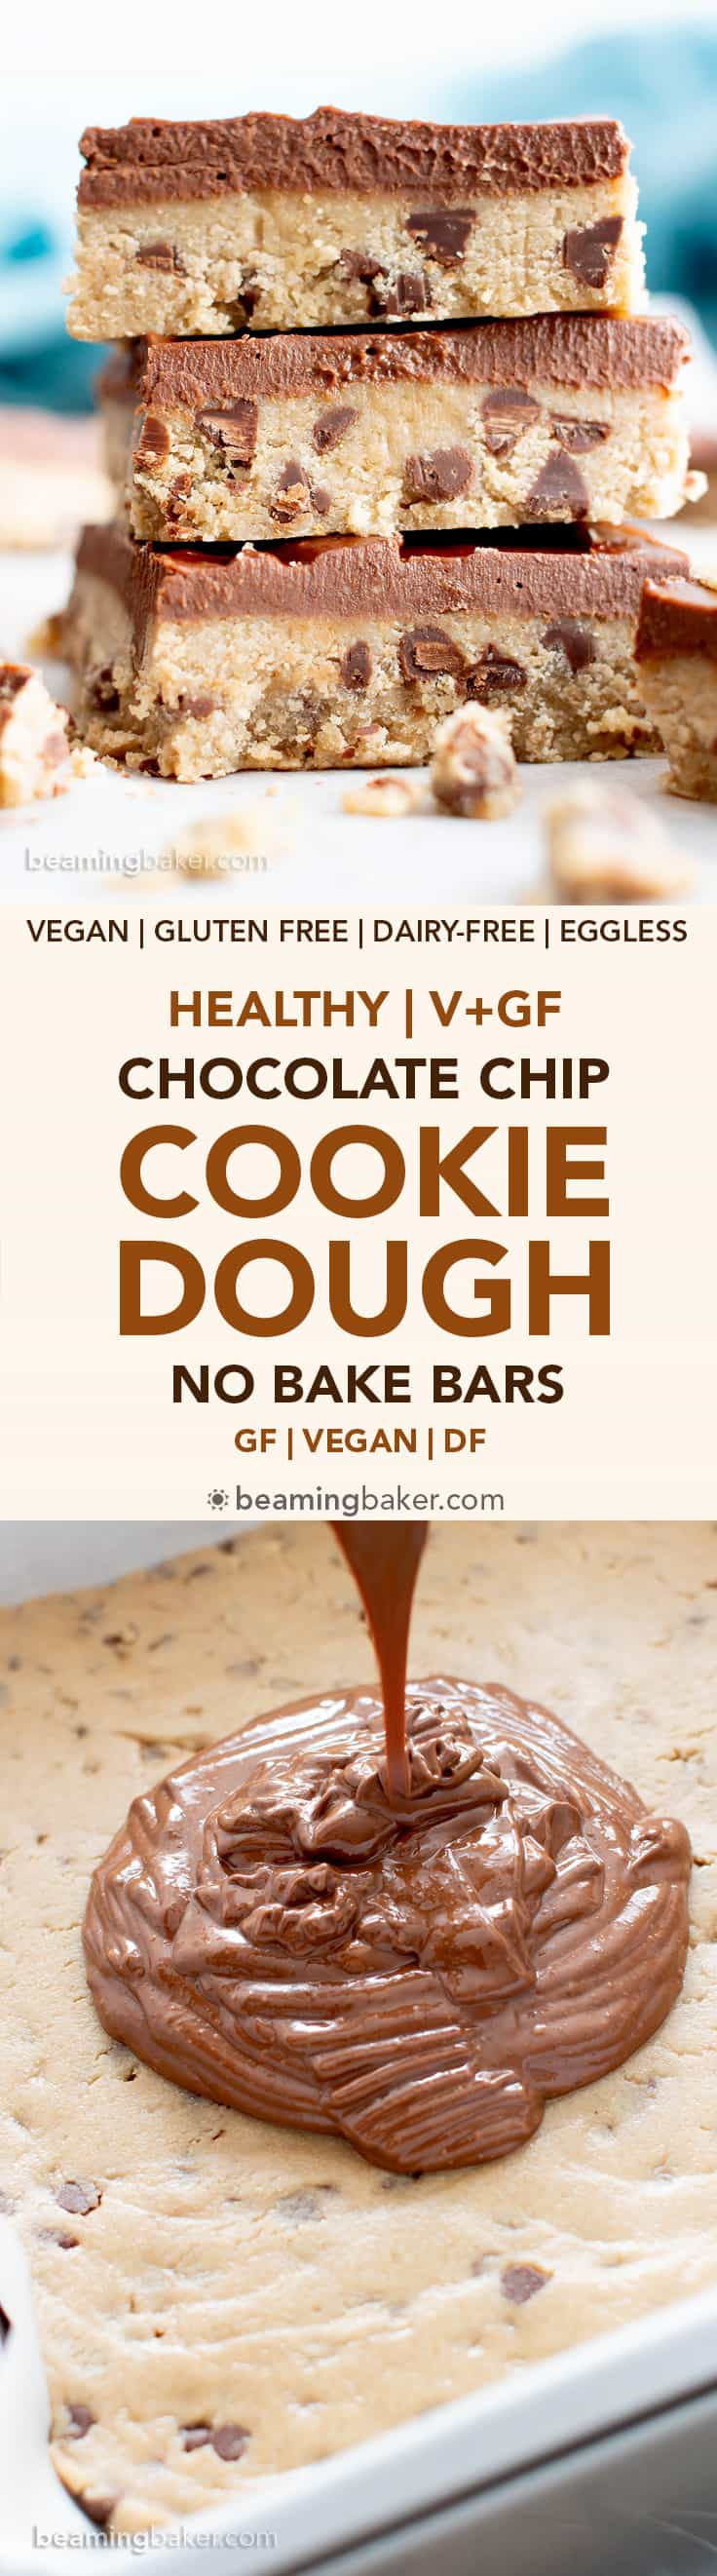 Healthy Gluten Free Cookie Dough Bars (V, GF): an easy, no bake recipe for decadent edible cookie dough bars coated in a thick layer of mouthwatering chocolate topping. Made with healthy, whole ingredients. #Vegan #GlutenFree #CookieDough #HealthyDesserts #NoBake #GlutenFreeVegan #BeamingBaker   Recipe at BeamingBaker.com